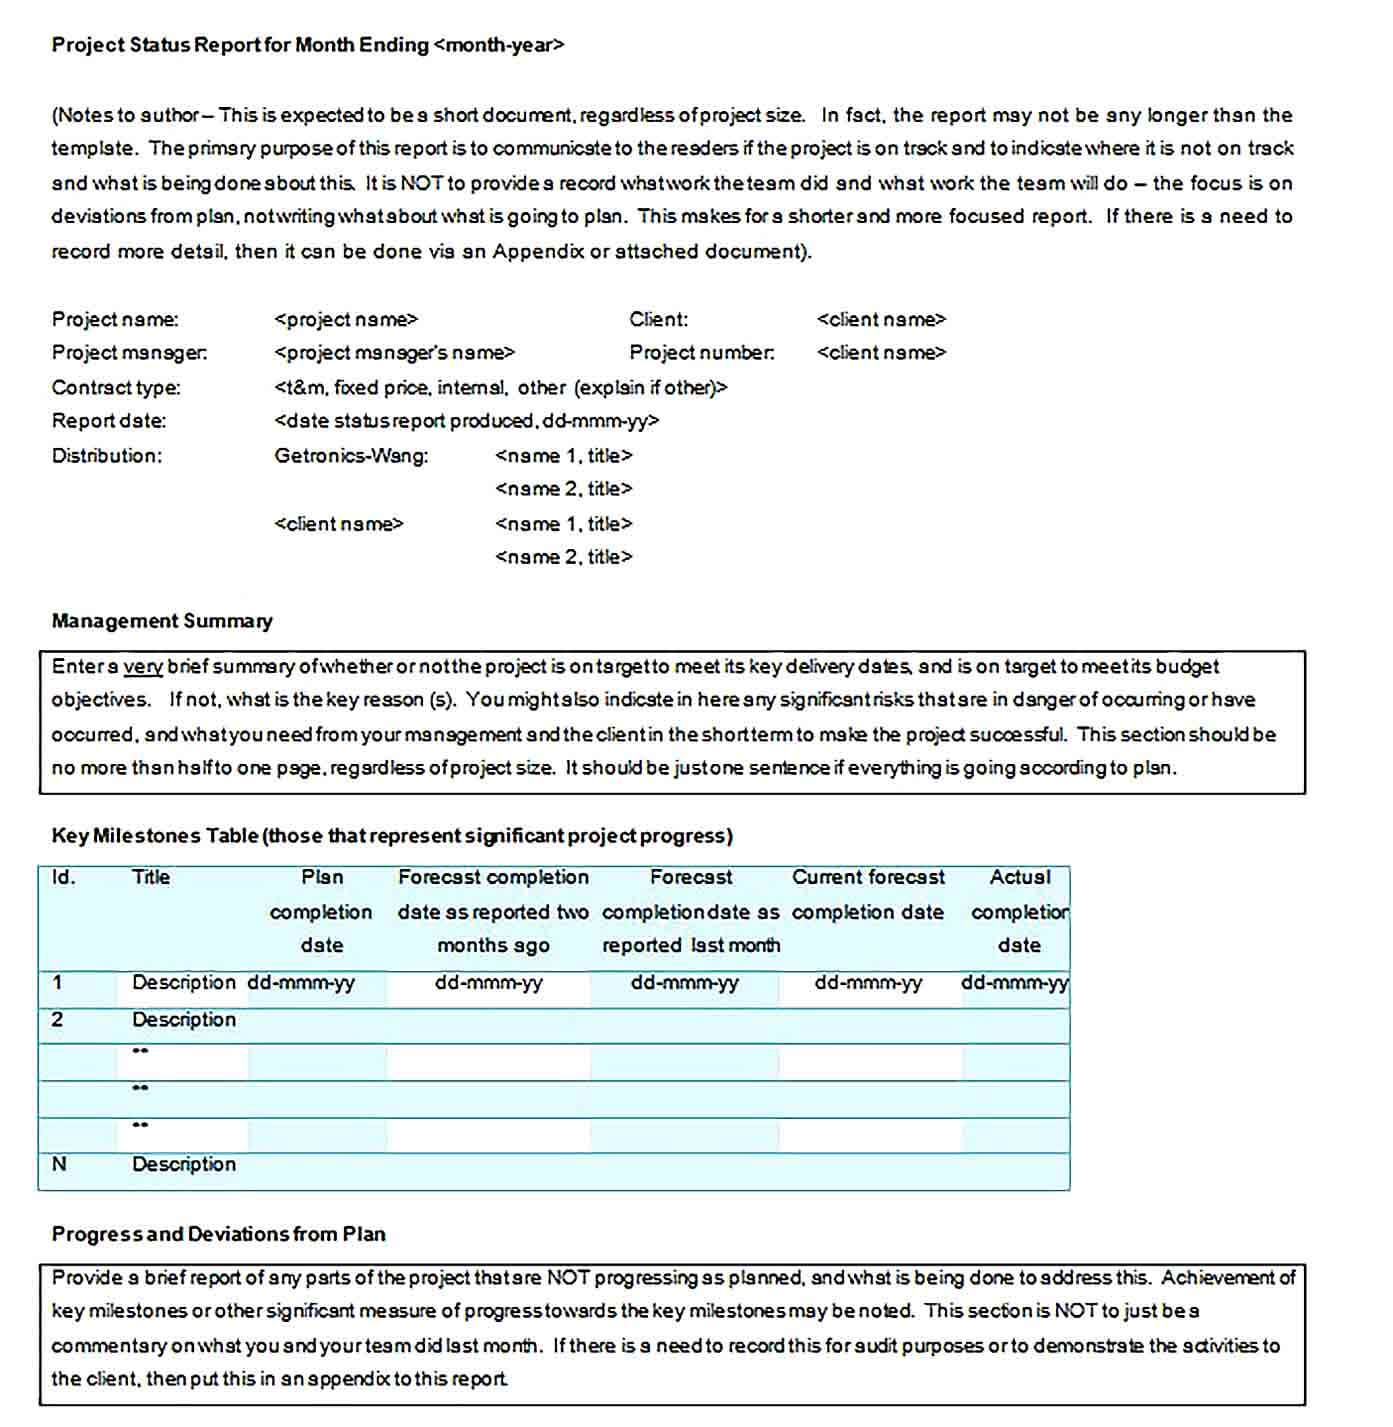 Sample Monthly Project Status Report Template